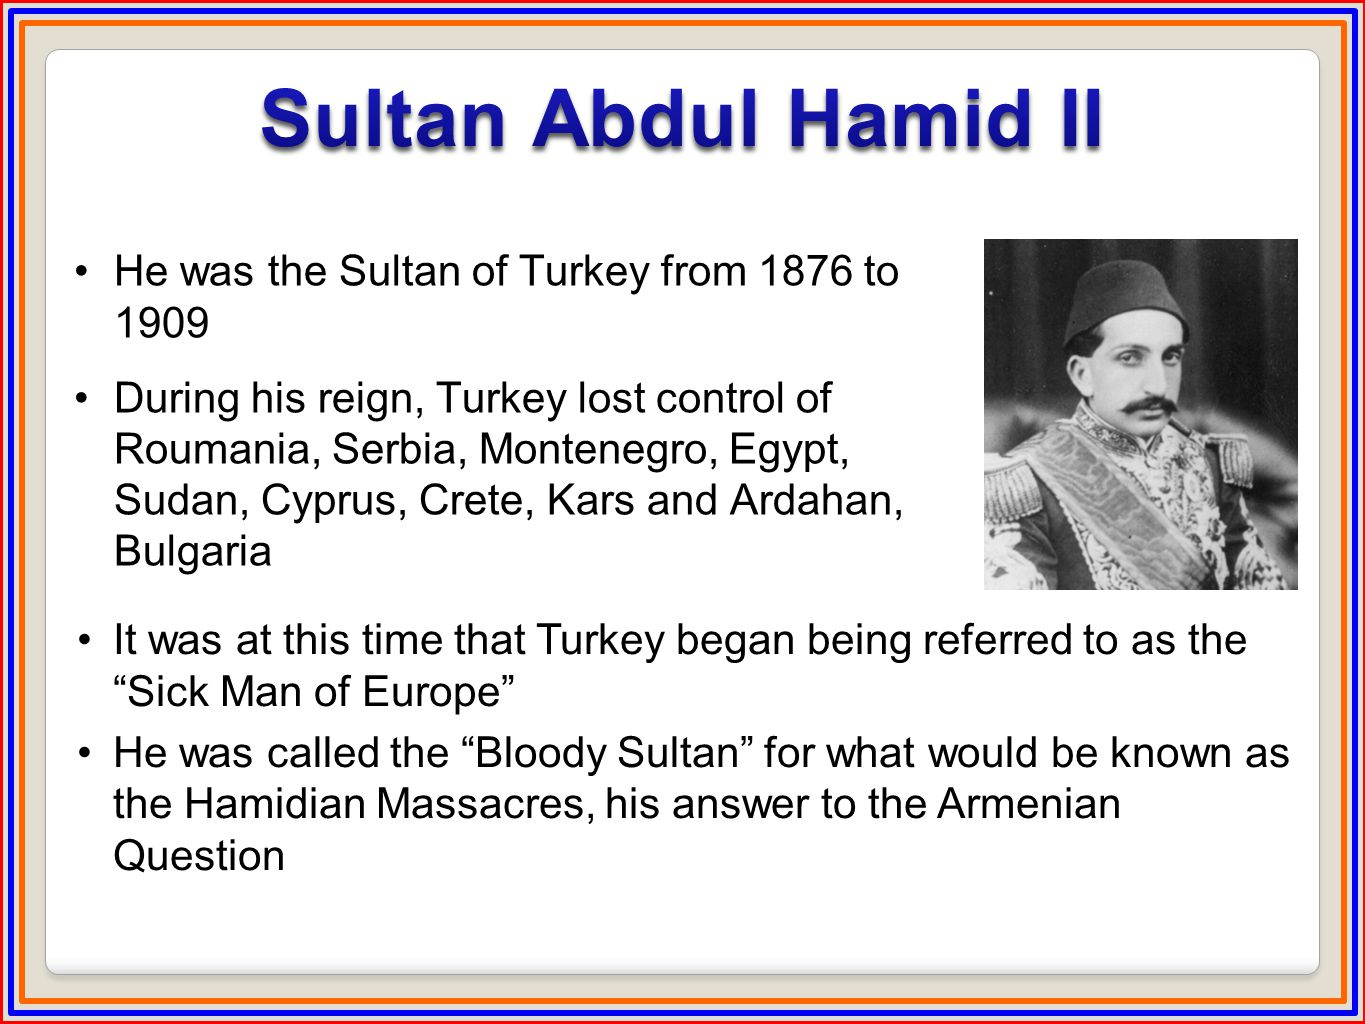 He was the Sultan of Turkey from 1876 to 1909 During his reign, Turkey lost control of Roumania, Serbia, Montenegro, Egypt, Sudan, Cyprus, Crete, Kars and Ardahan, Bulgaria It was at this time that Turkey began being referred to as the Sick Man of Europe He was called the Bloody Sultan for what would be known as the Hamidian Massacres, his answer to the Armenian Question